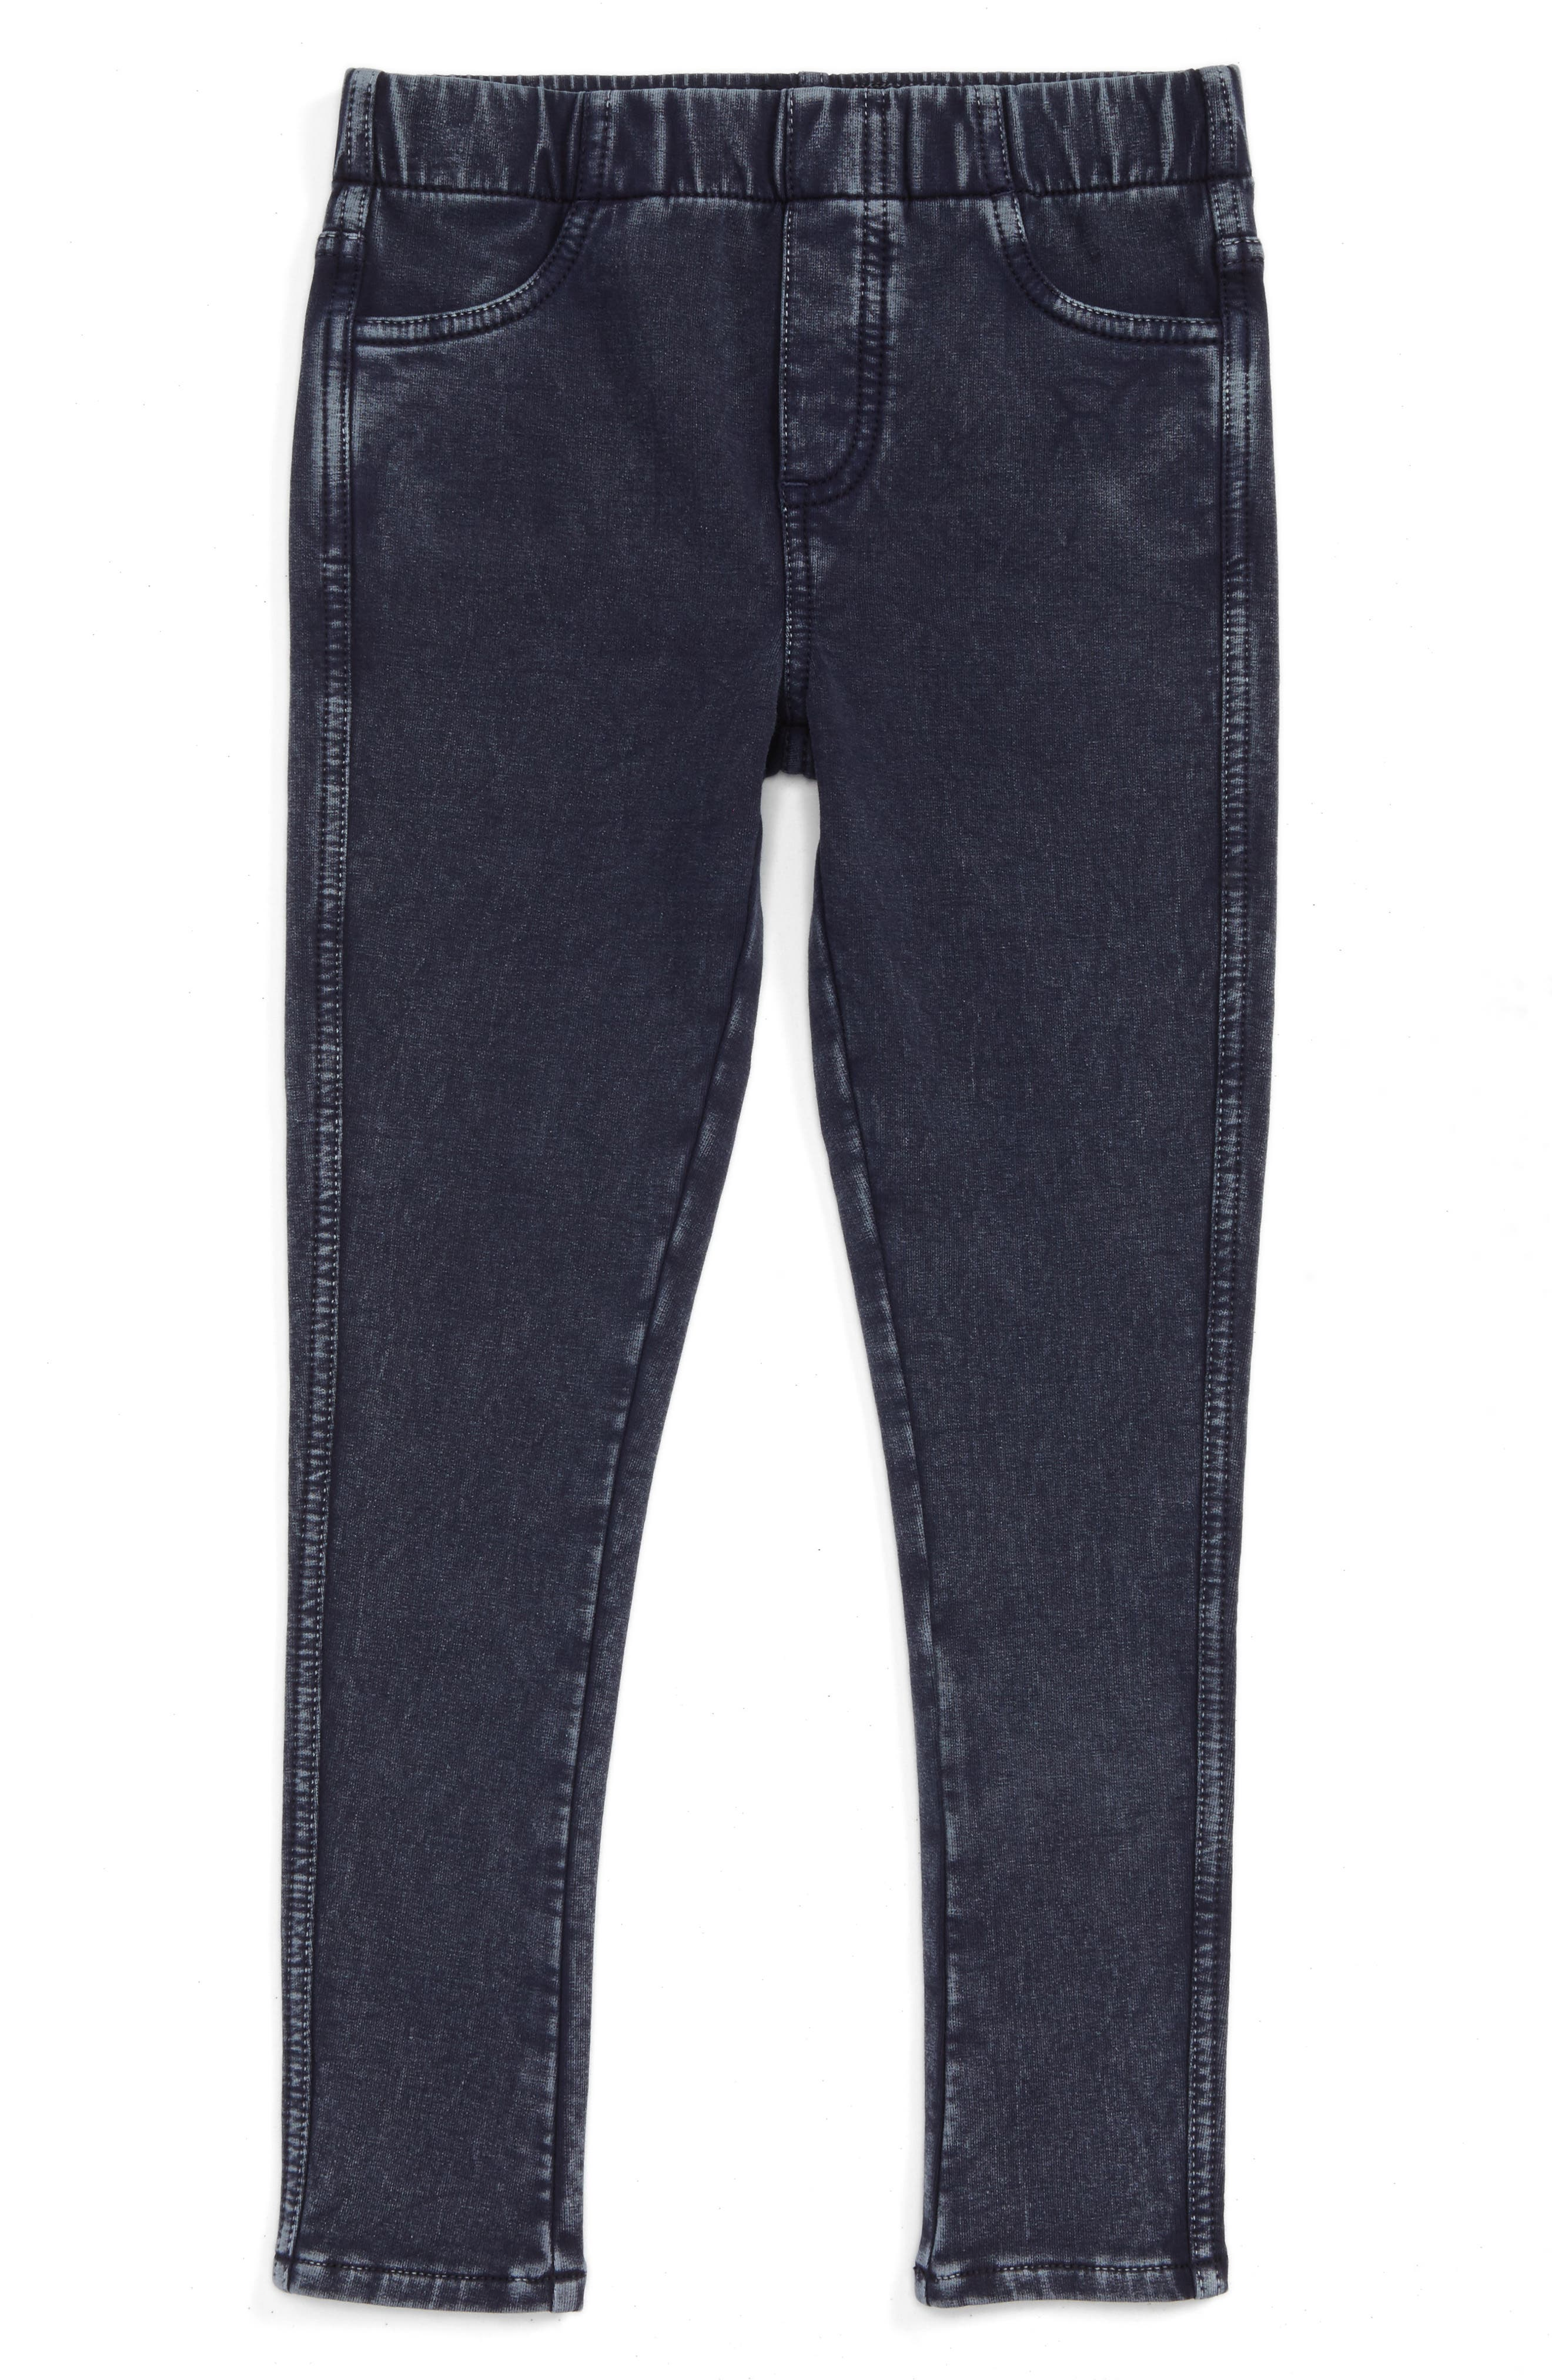 'Sadie' Jeggings,                         Main,                         color, DARK INDIGO WASH